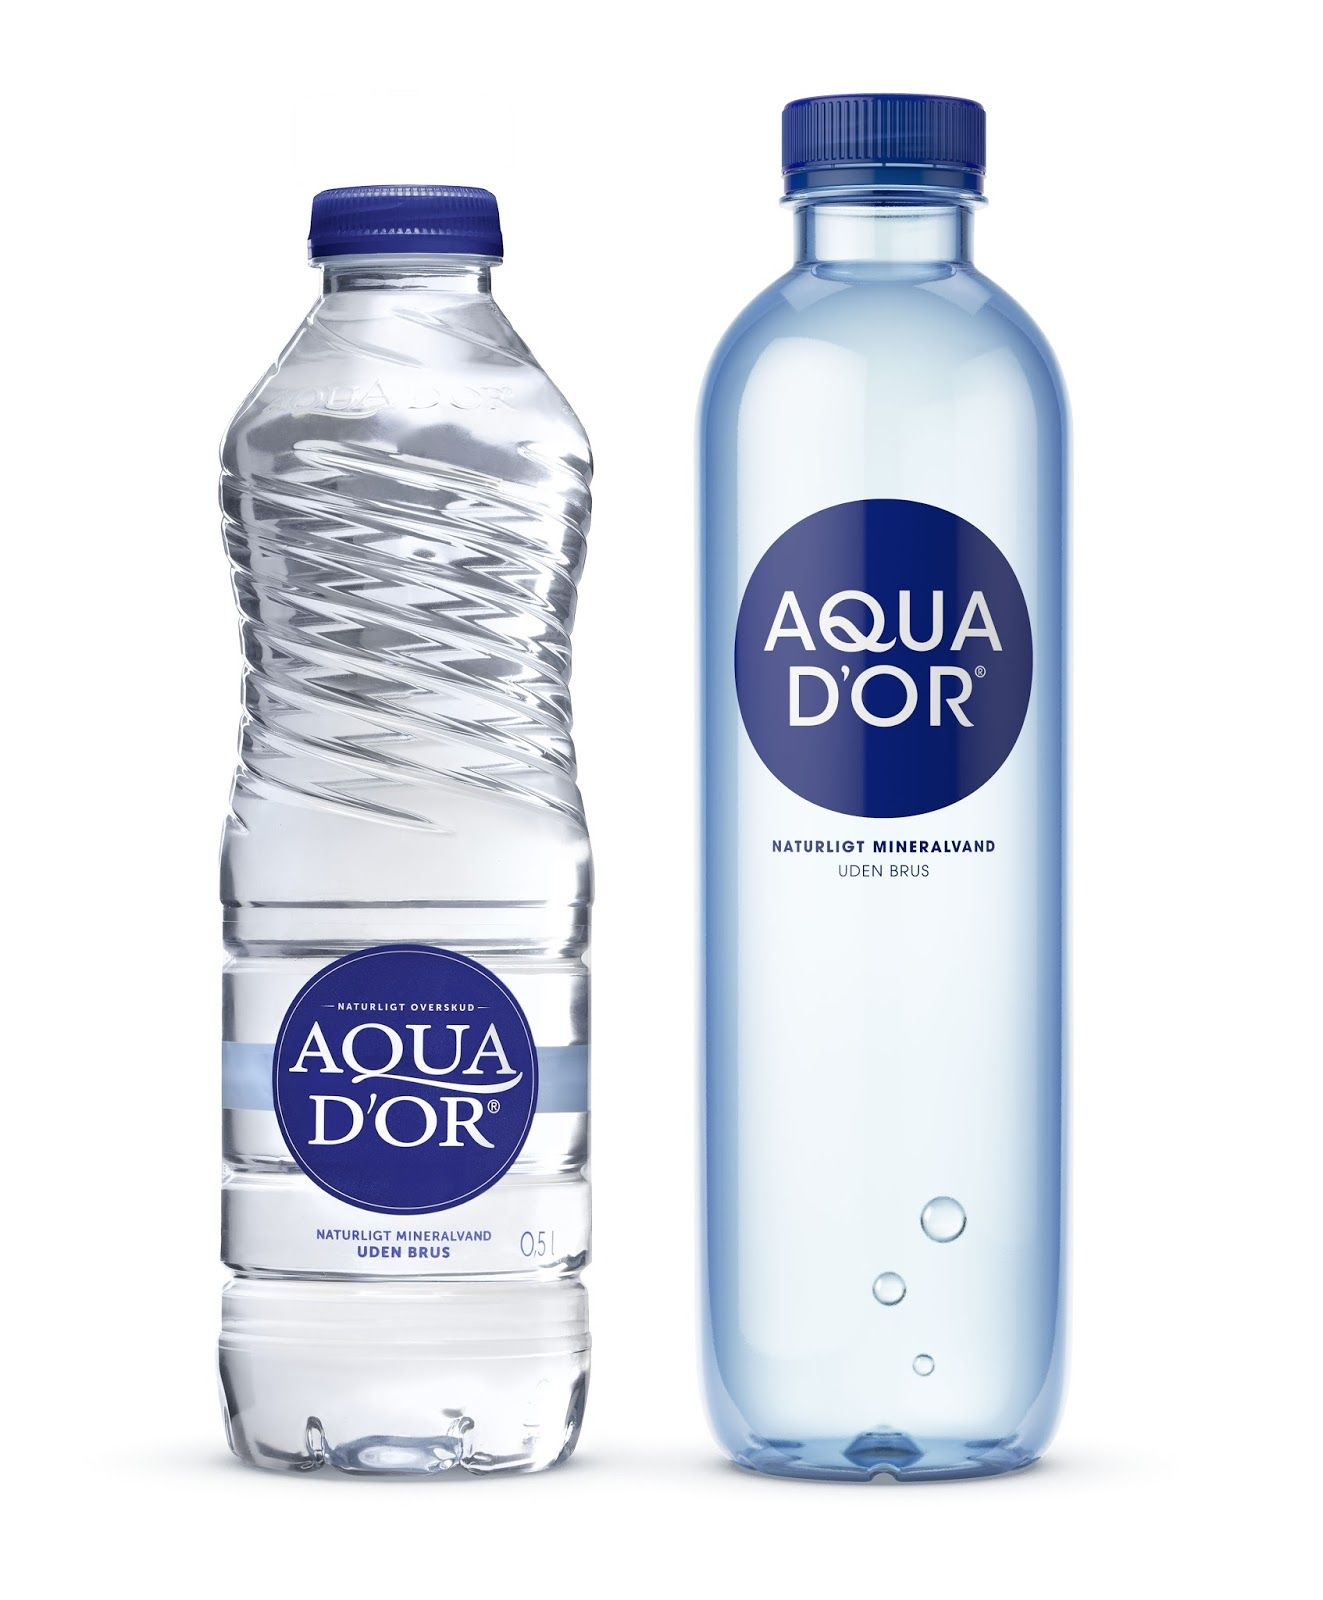 This is an image of Shocking Label Design for Water Bottles